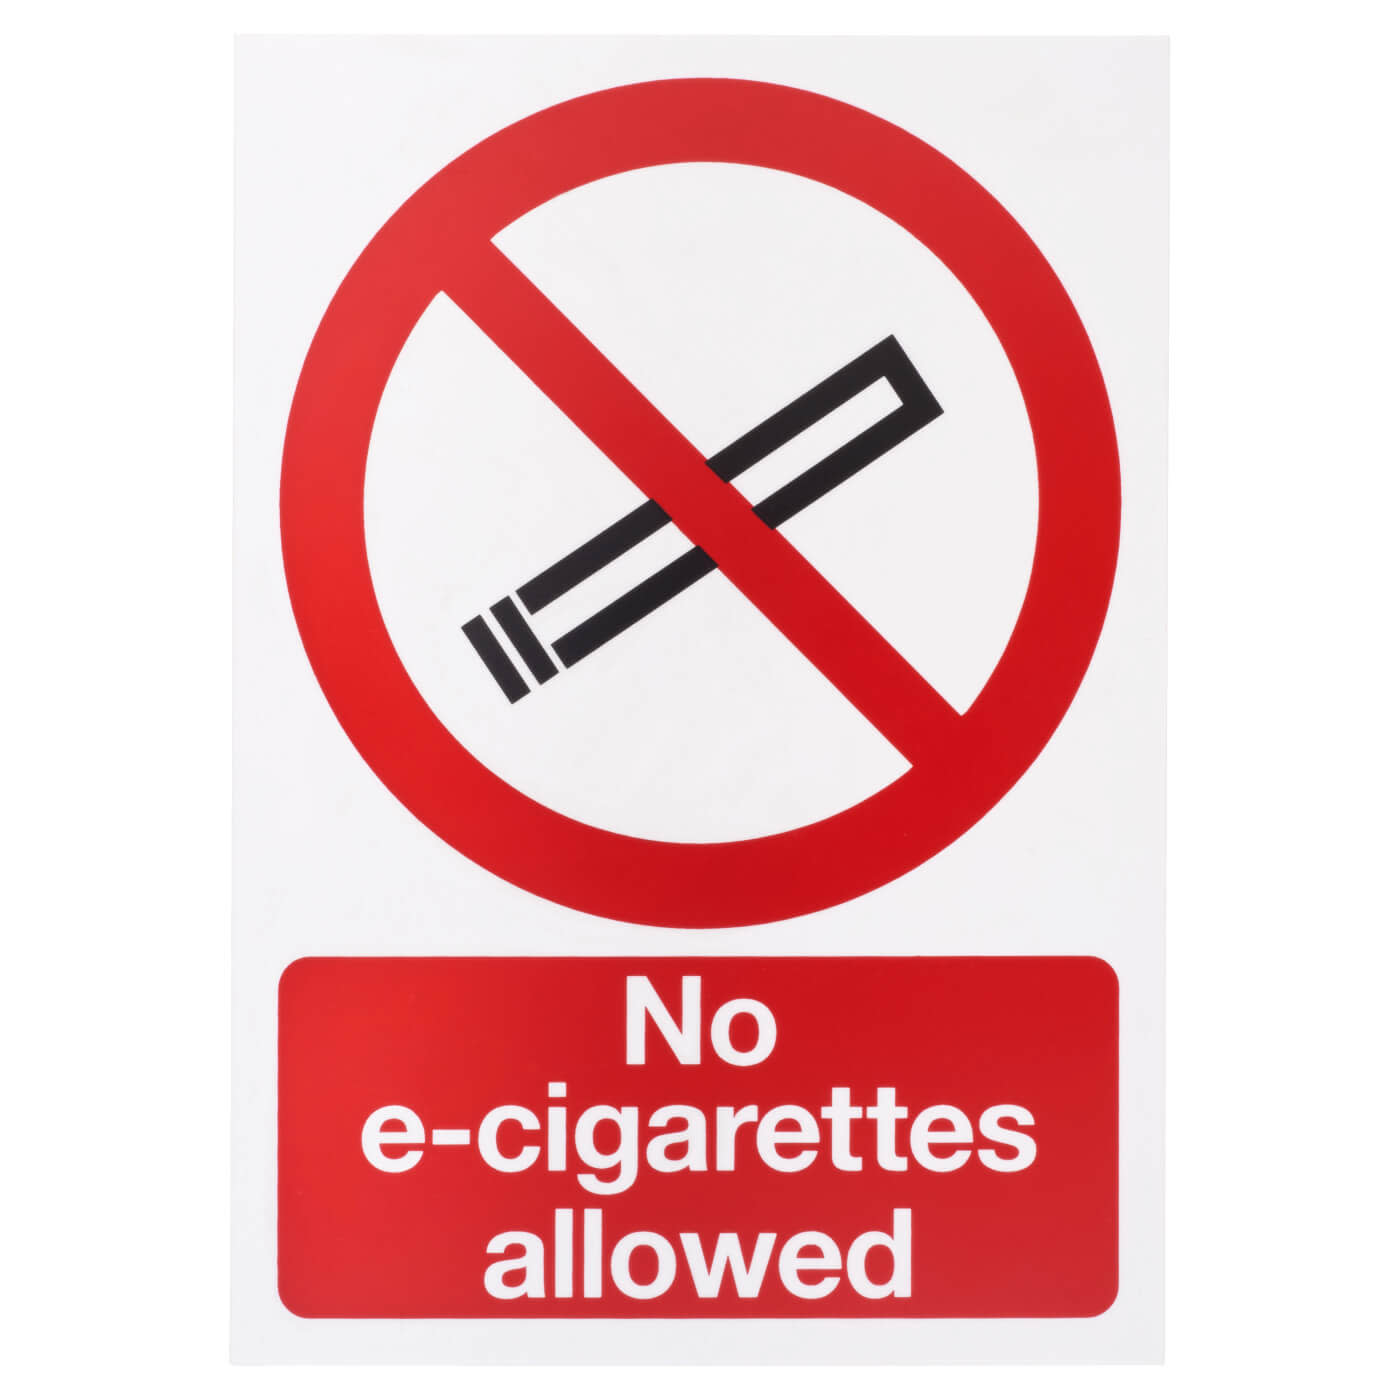 No E-Cigarettes Allowed - 297 x 210mm)